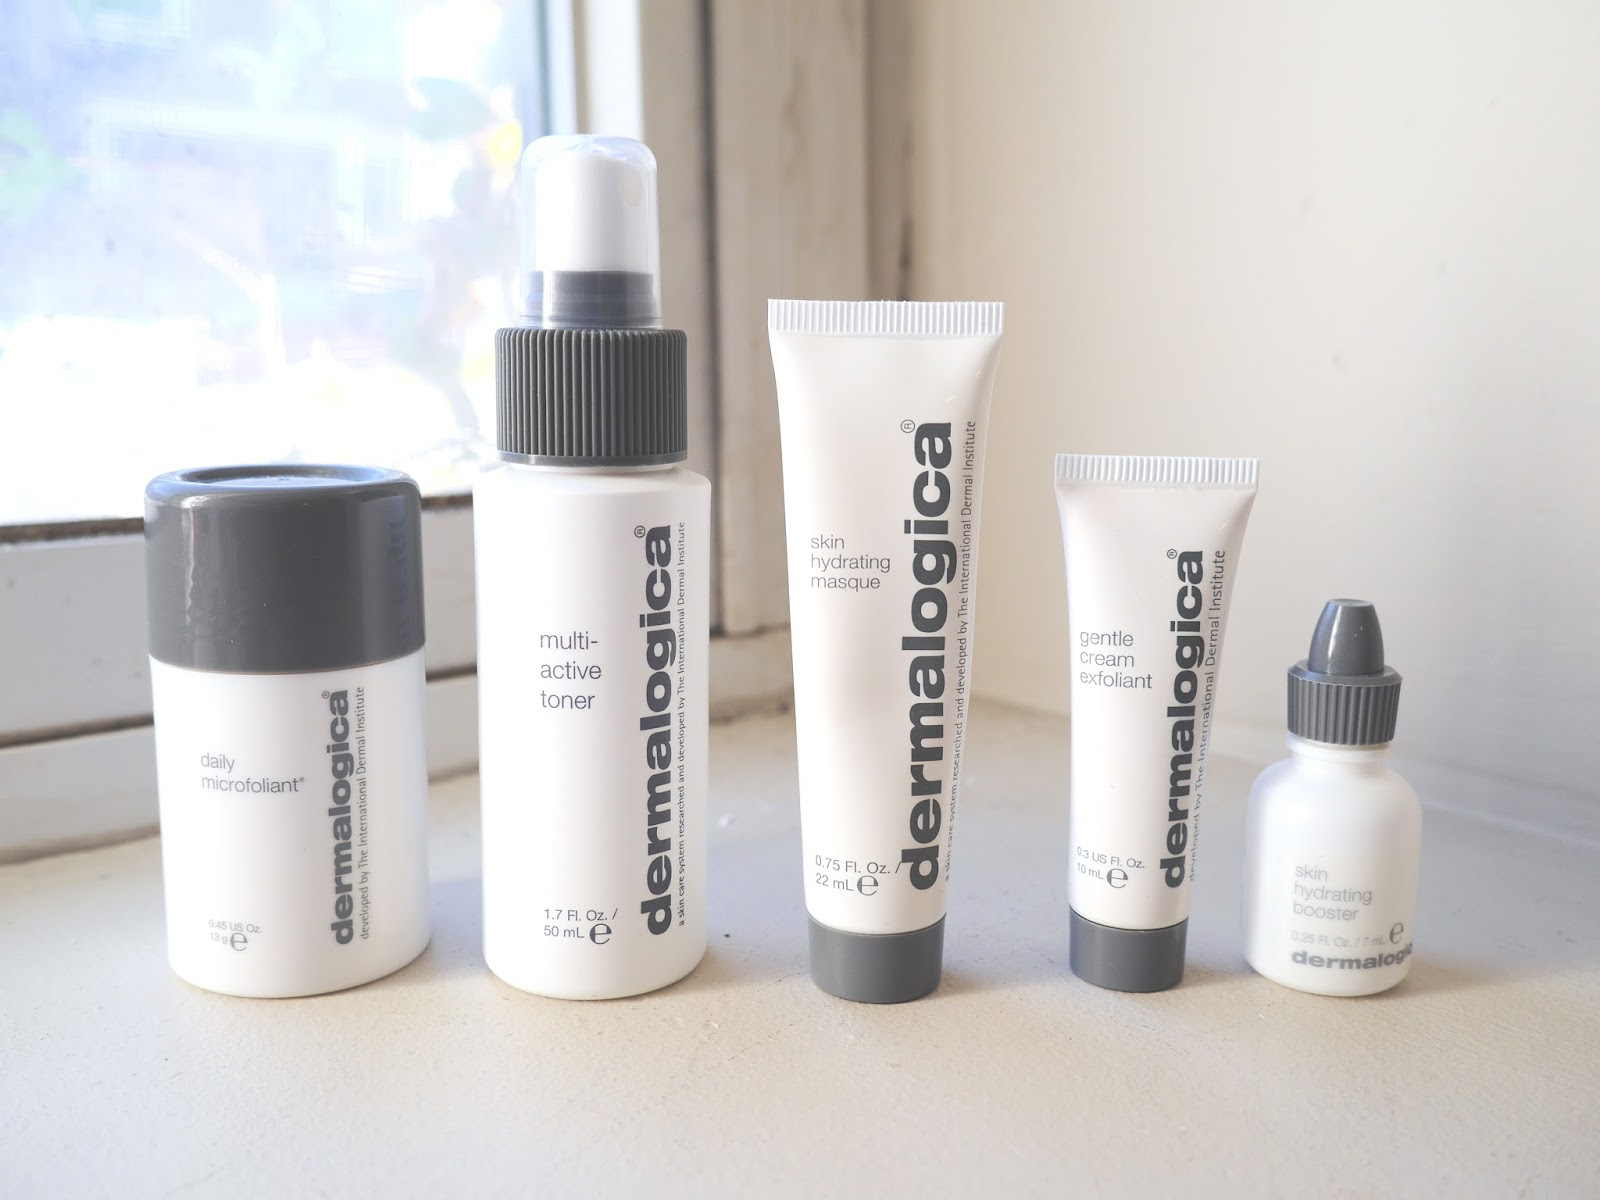 dermalogica daily microfolient multi-active toner skin hydrating masque gentle cream exfoliant skin hydration booster review